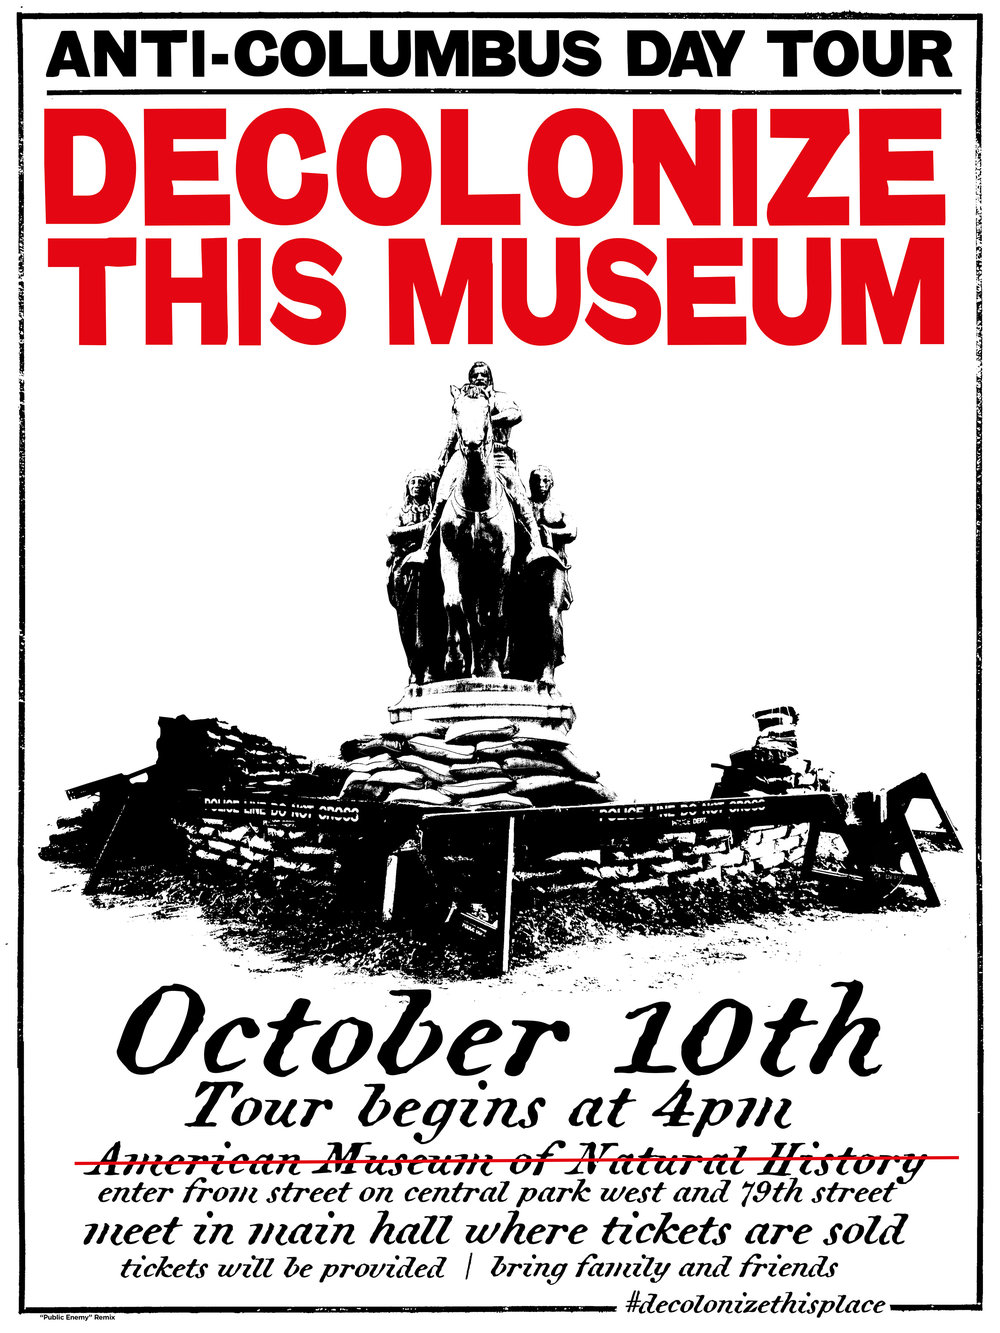 Decolonize This Museum_Tour Poster_HIRES.jpg